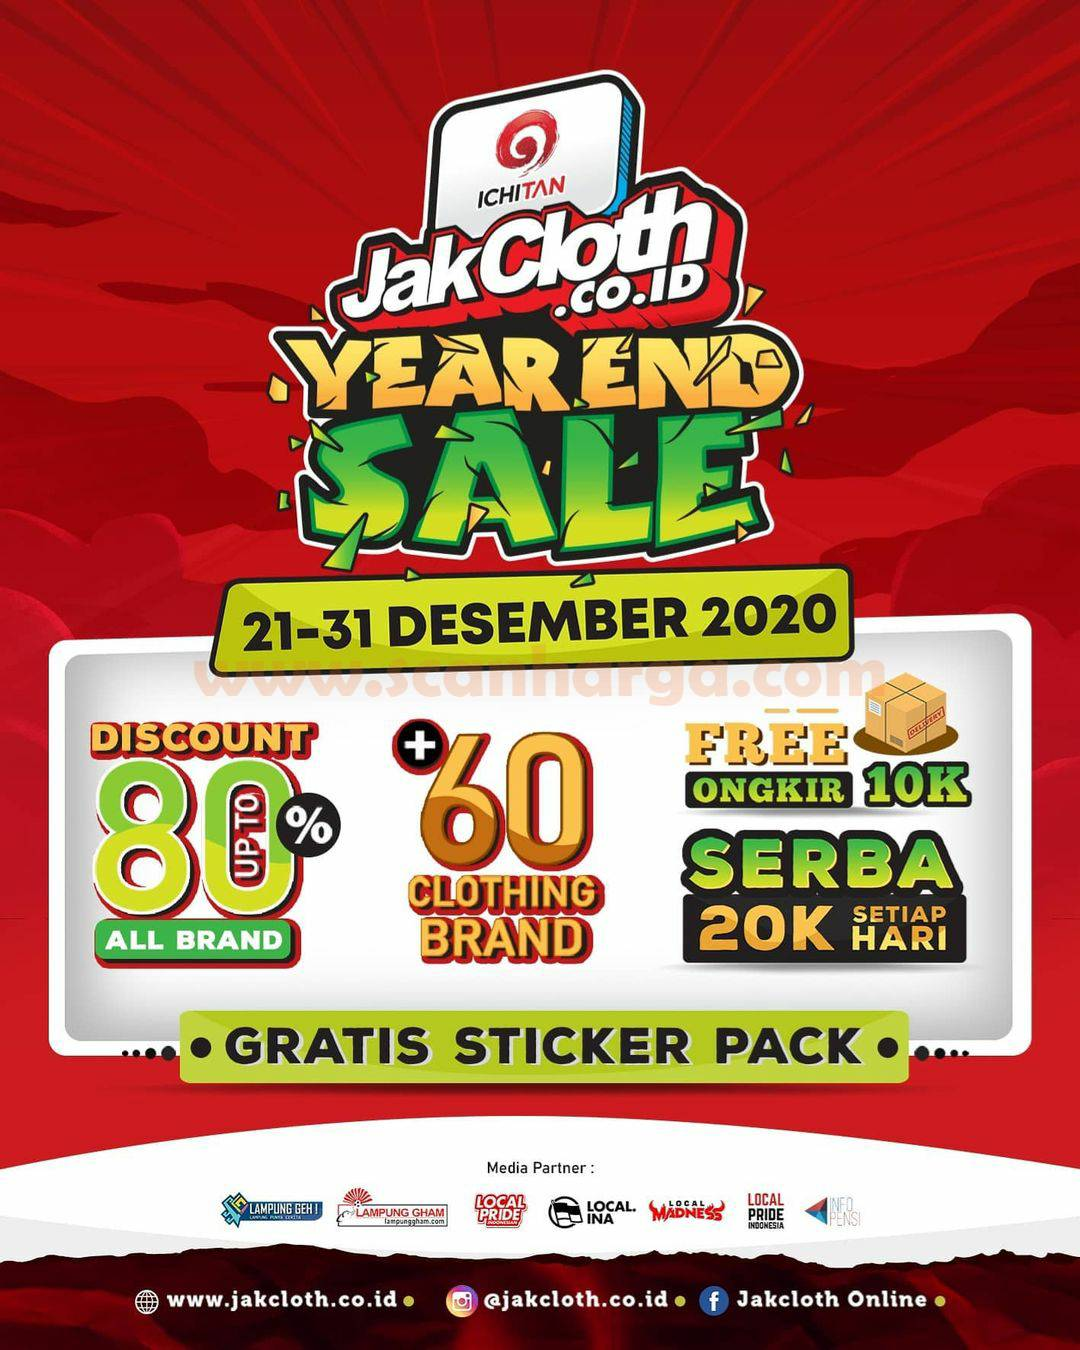 Promo Jakcloth YEAR END SALE – Disc. Up to 80% Off + GRATIS STICKER PACK*